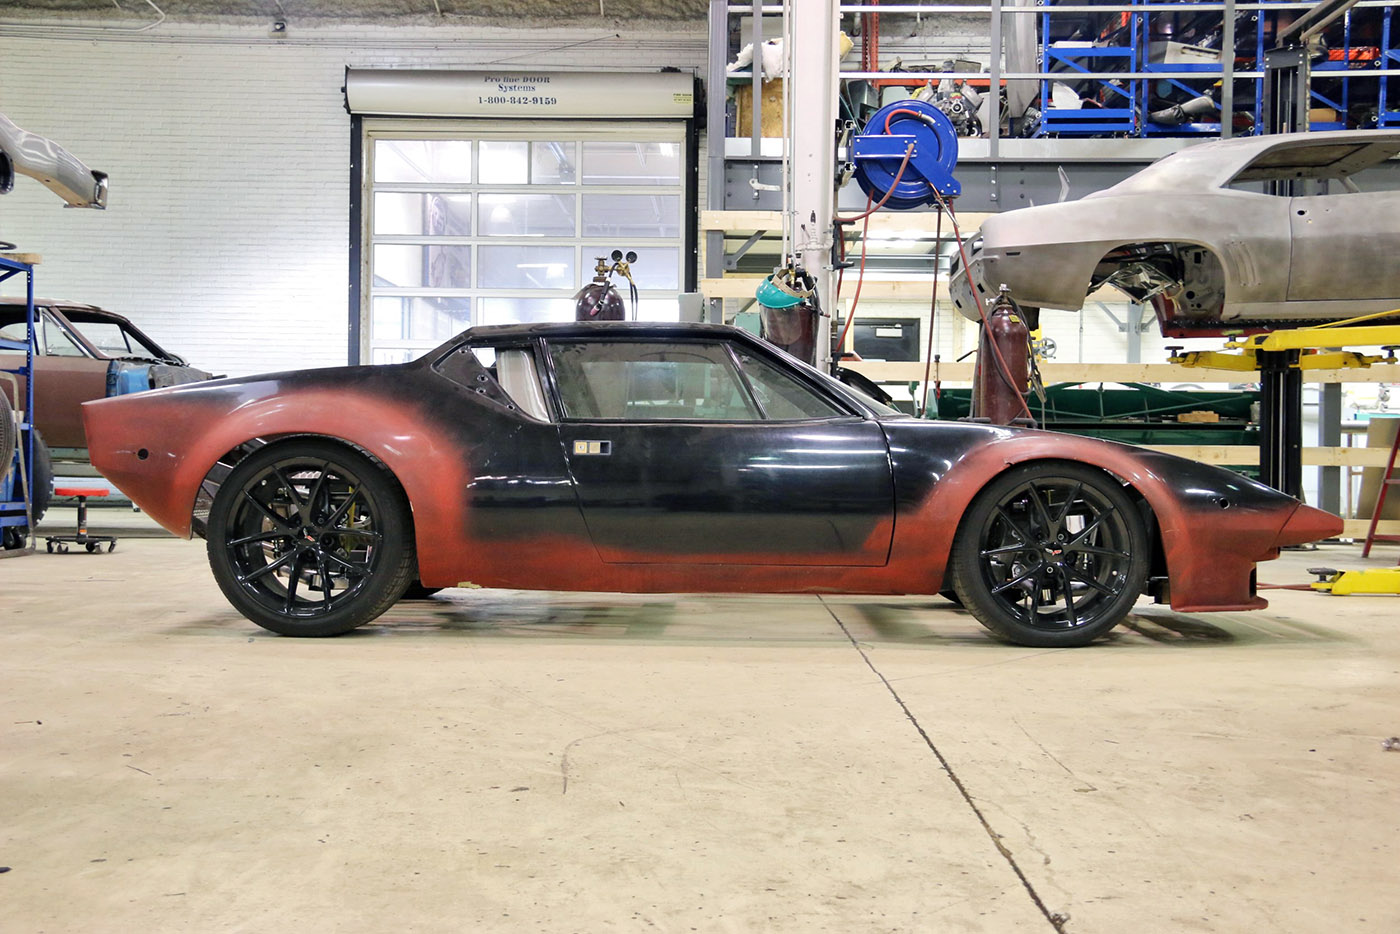 Building A Pantera With A Twin Turbo 428 Windsor Engine